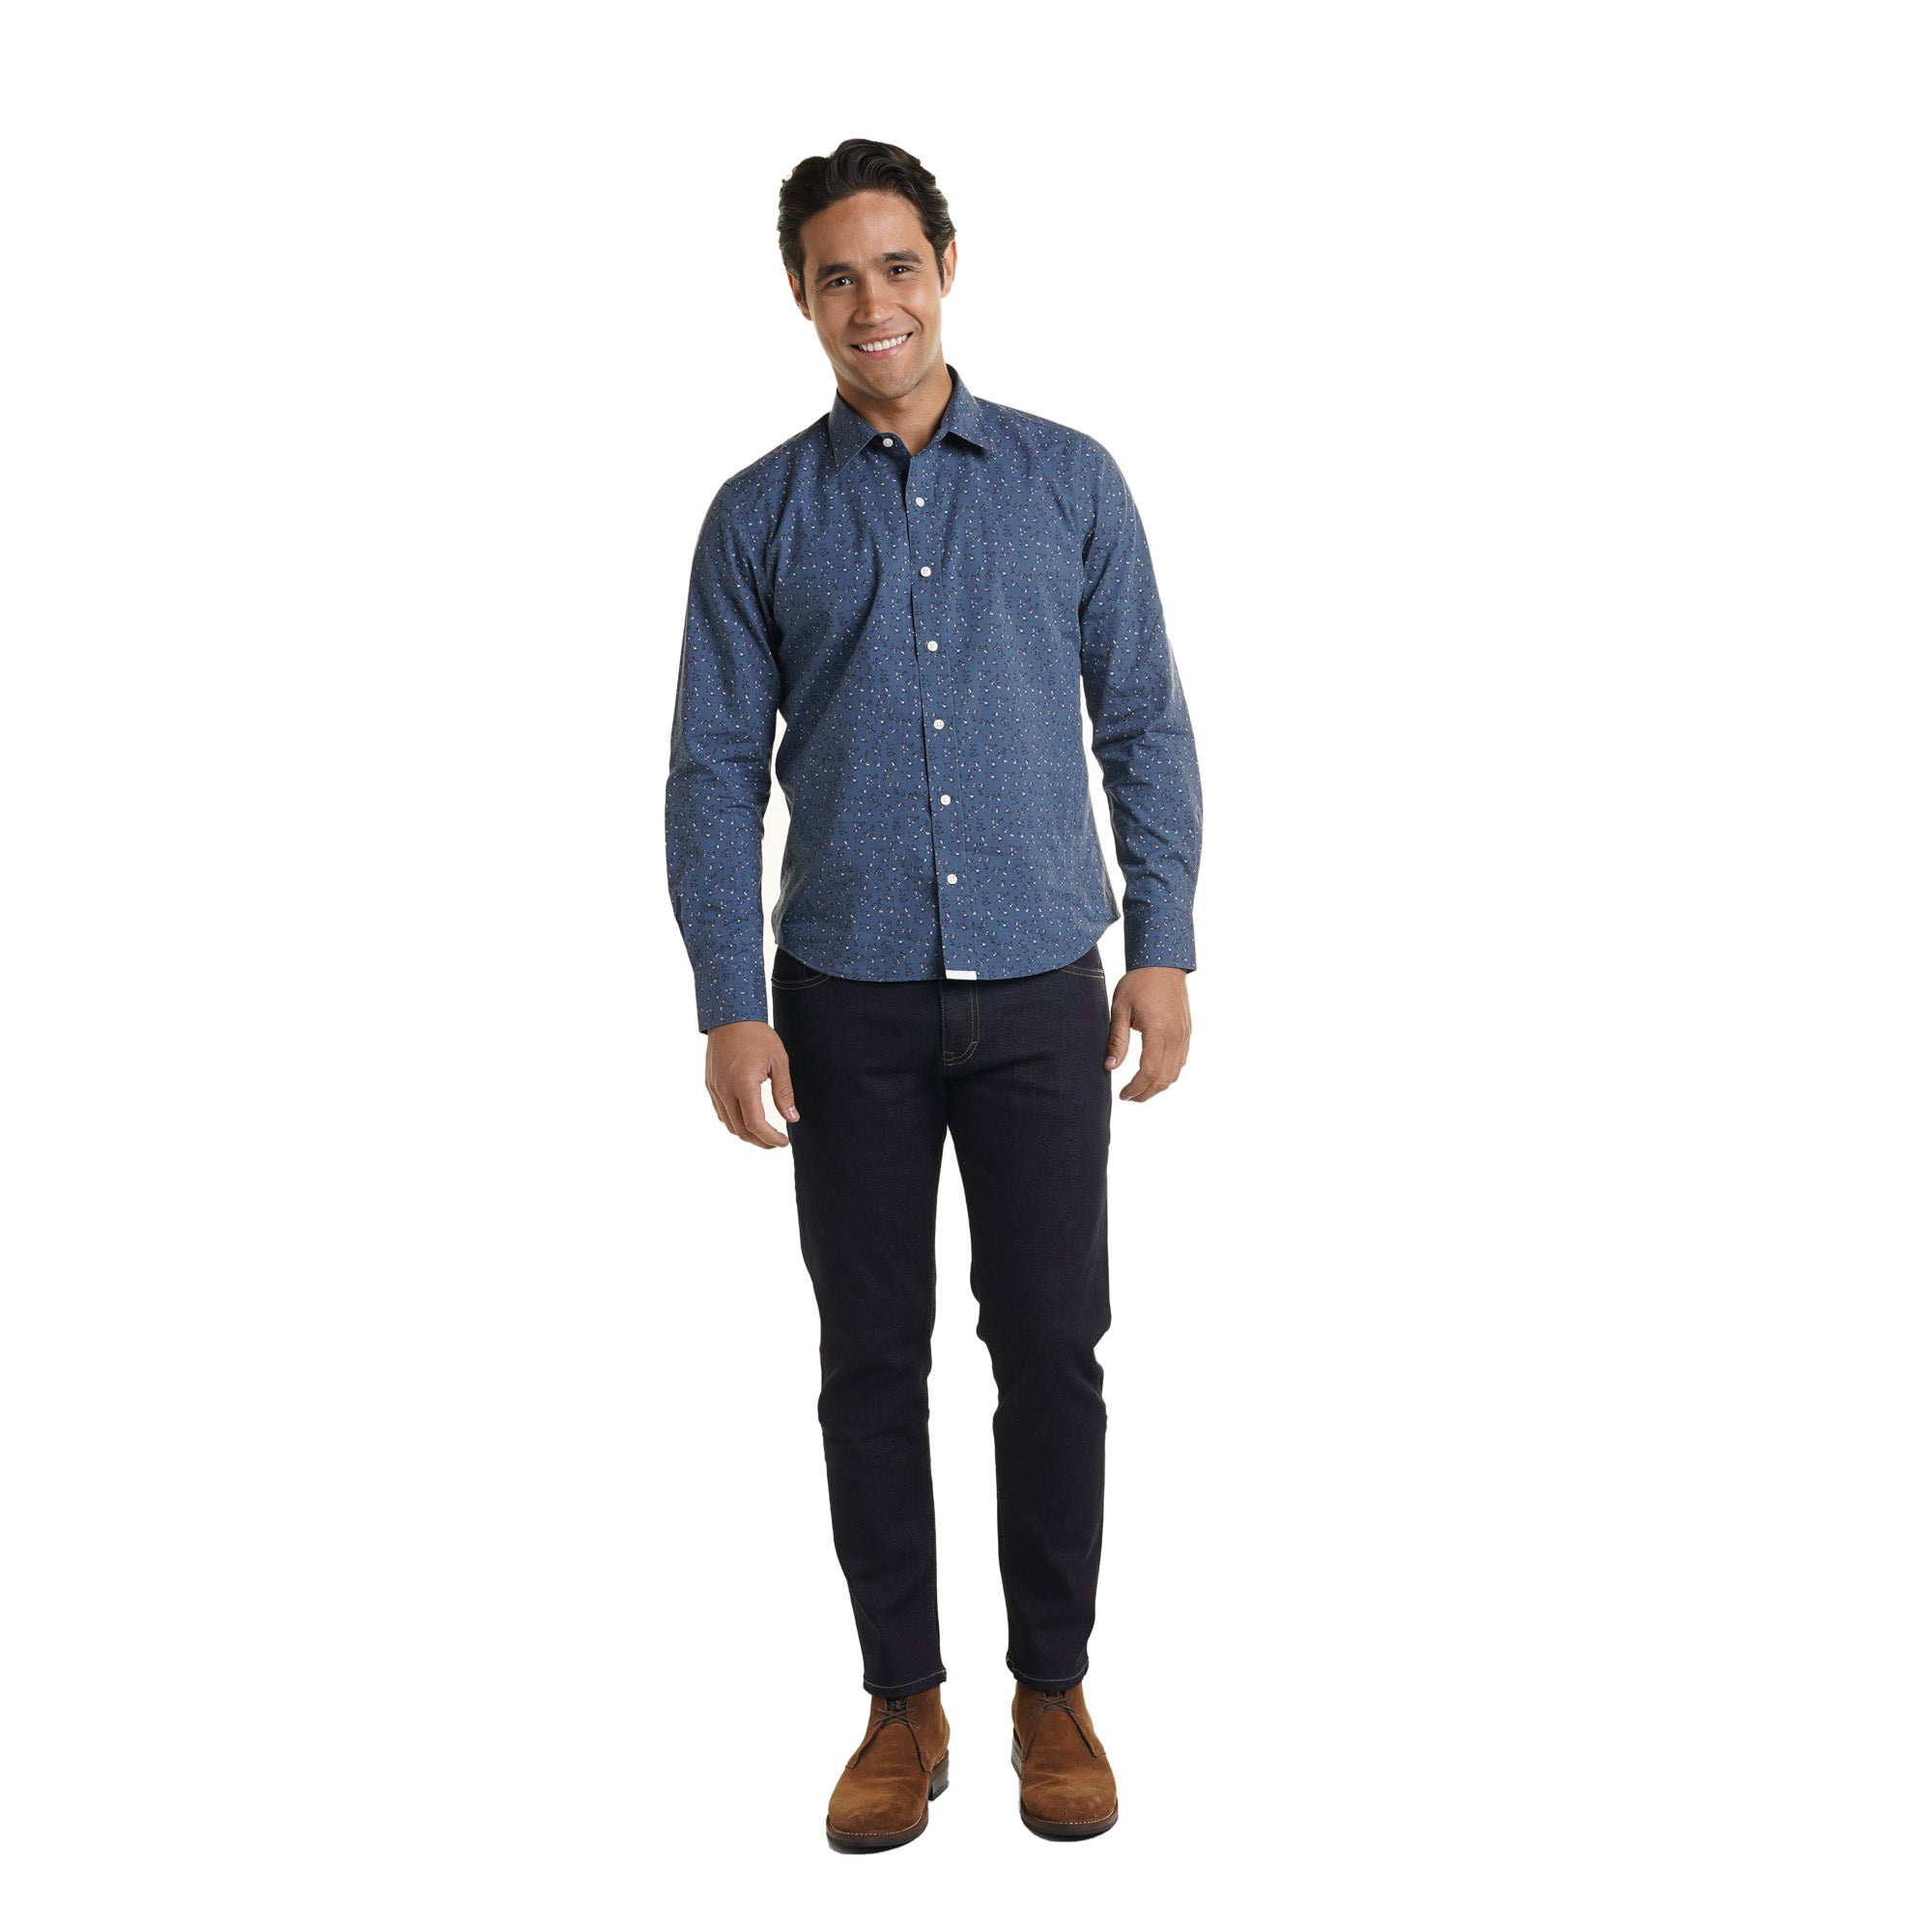 Weekend Printed Shirt Slim Fit - Indigo Flower